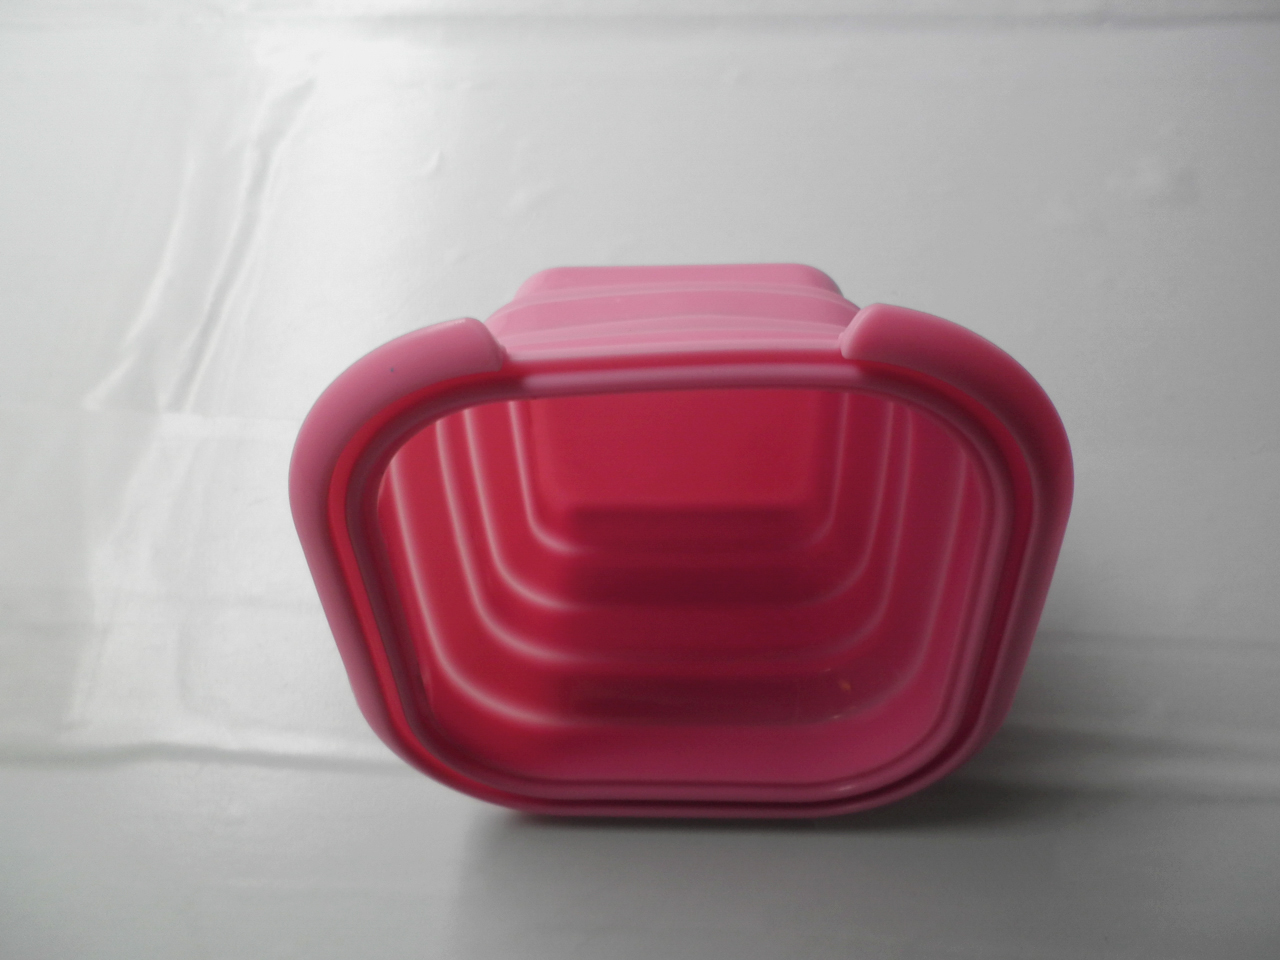 http://www.refinehksilicone.cn/data/images/product/20180418101226_216.jpg